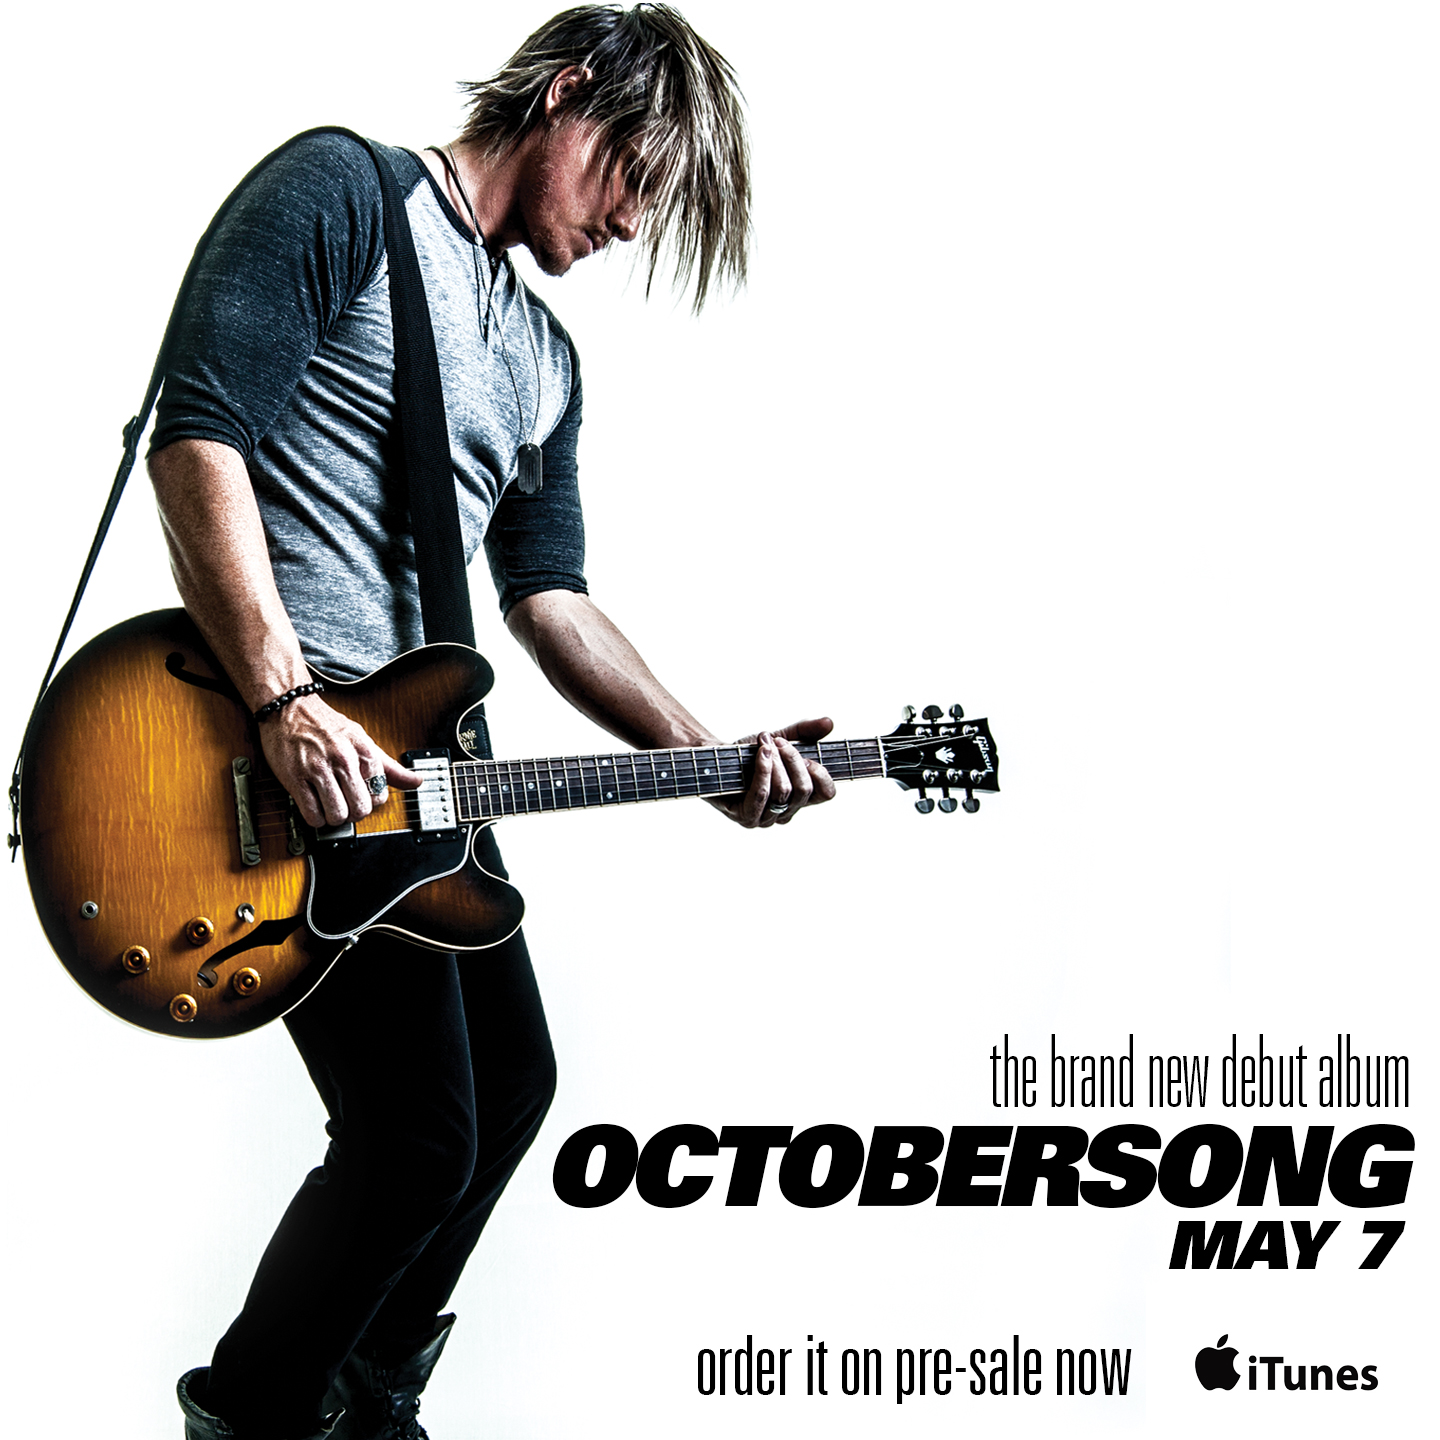 Octobersong now on pre-sale at iTunes